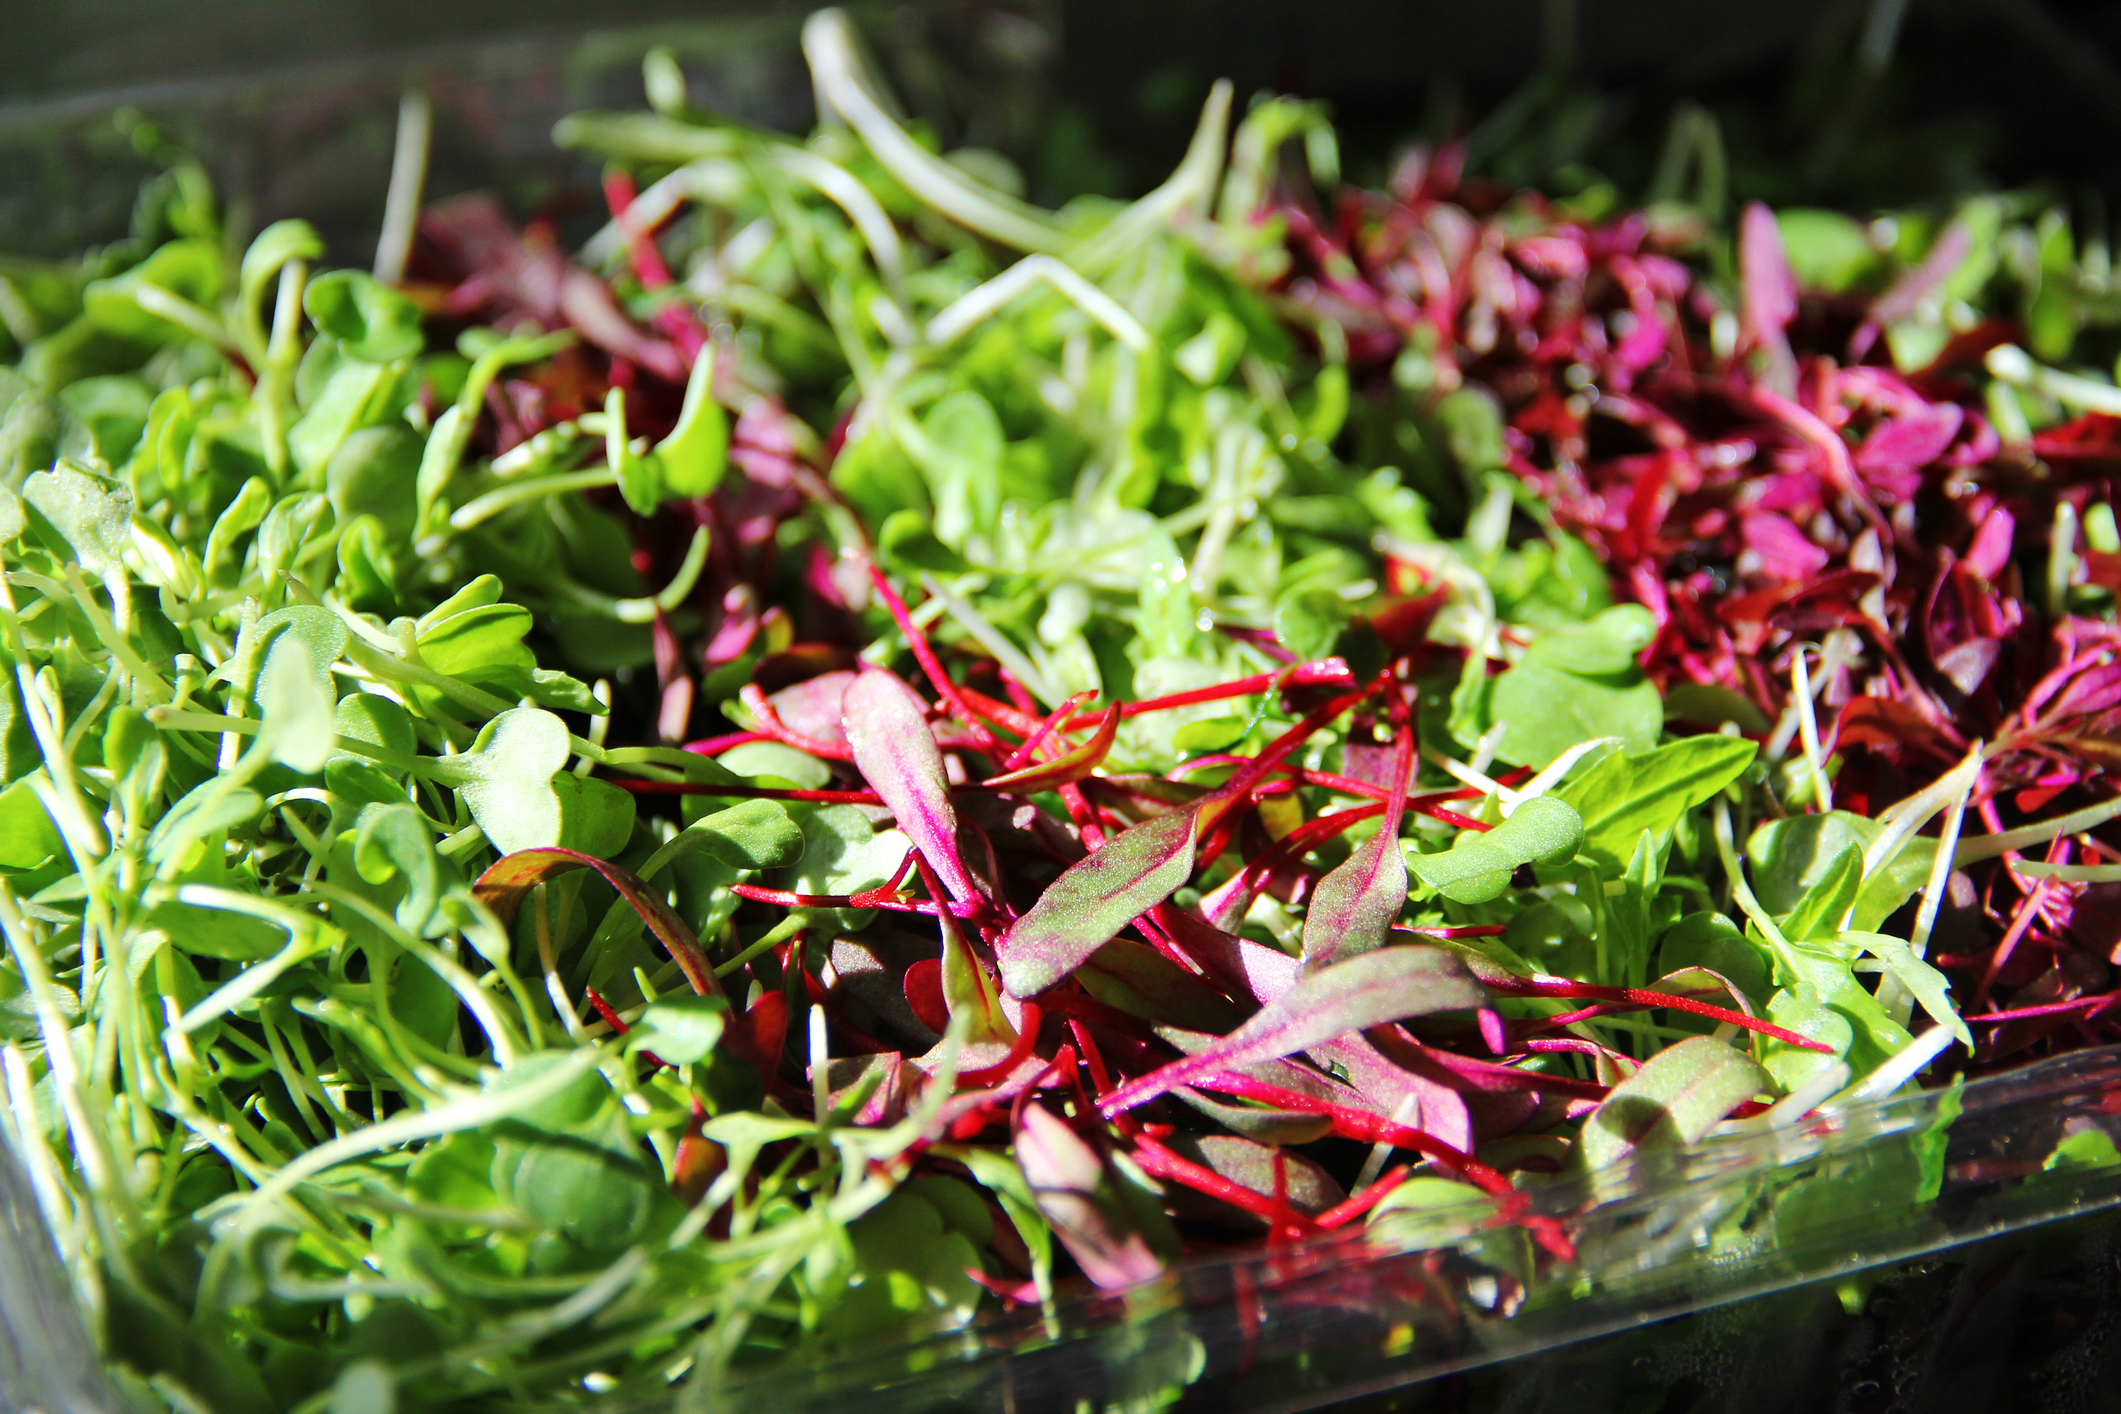 Gorgeous assortment of Micro greens